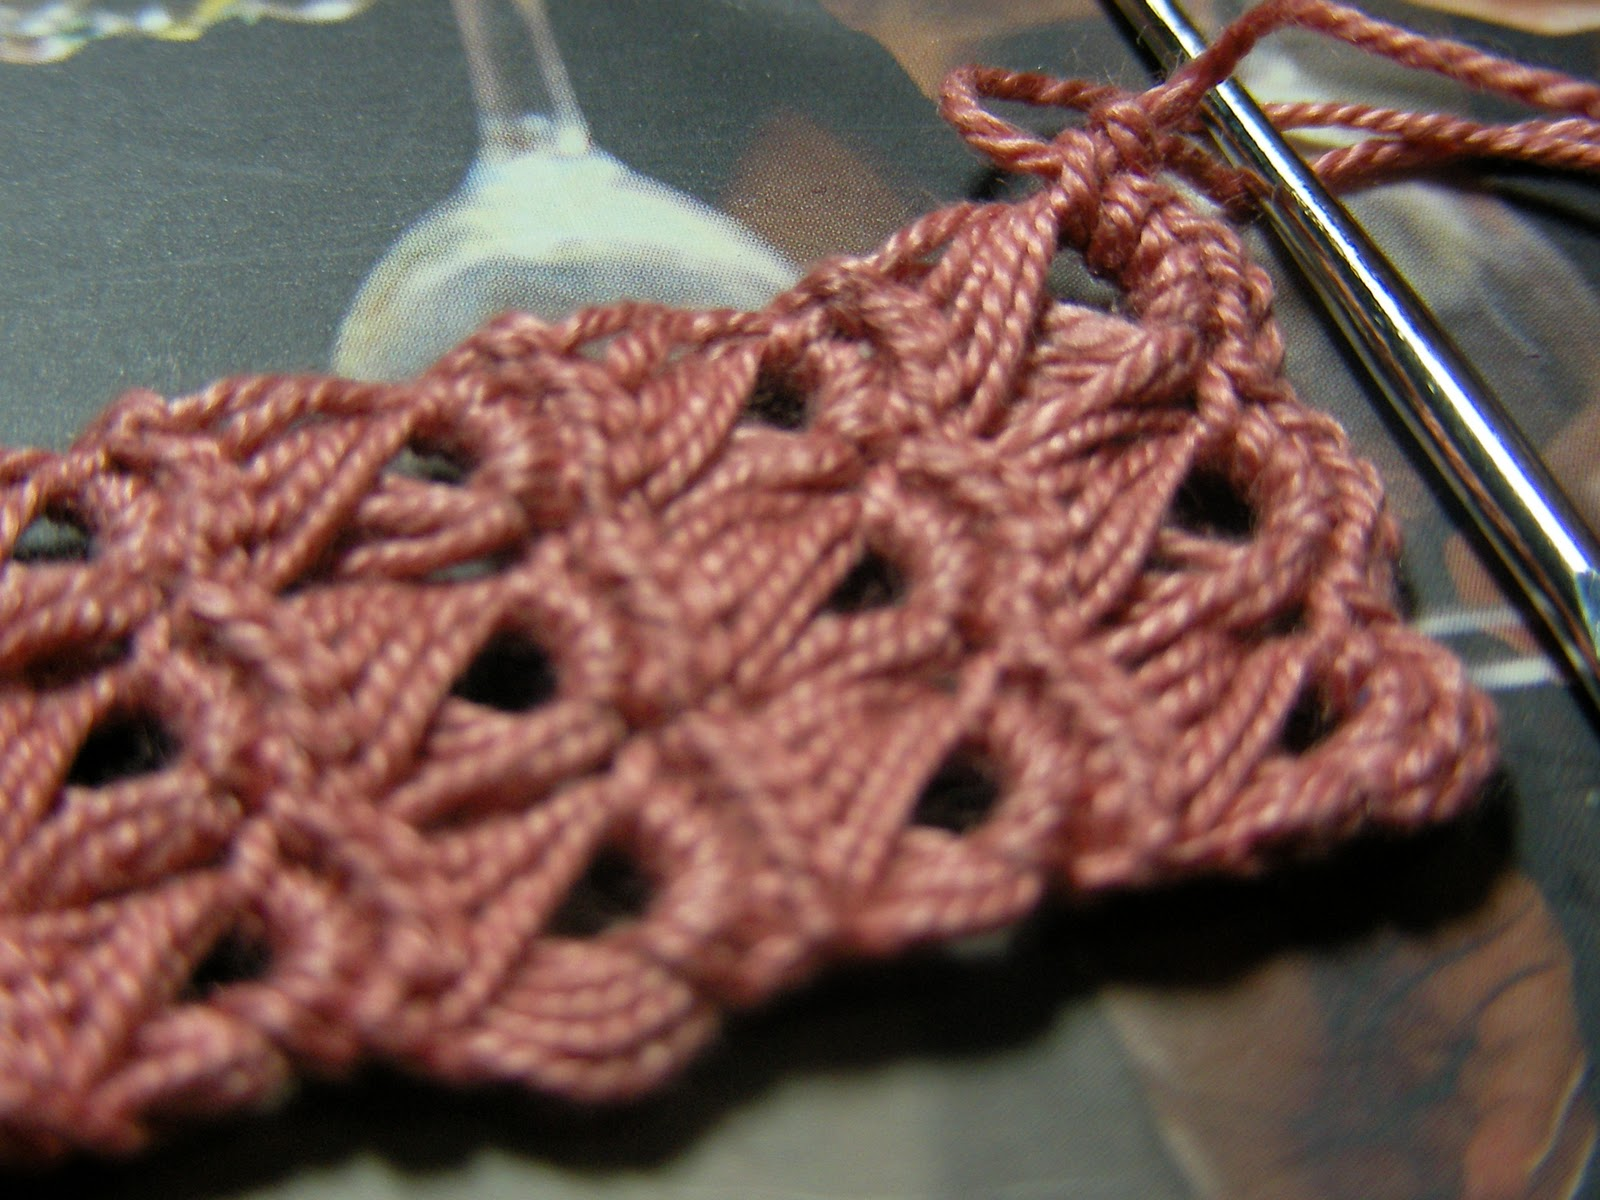 Crochet Philippines: Practicing Broomstick Lace Crochet